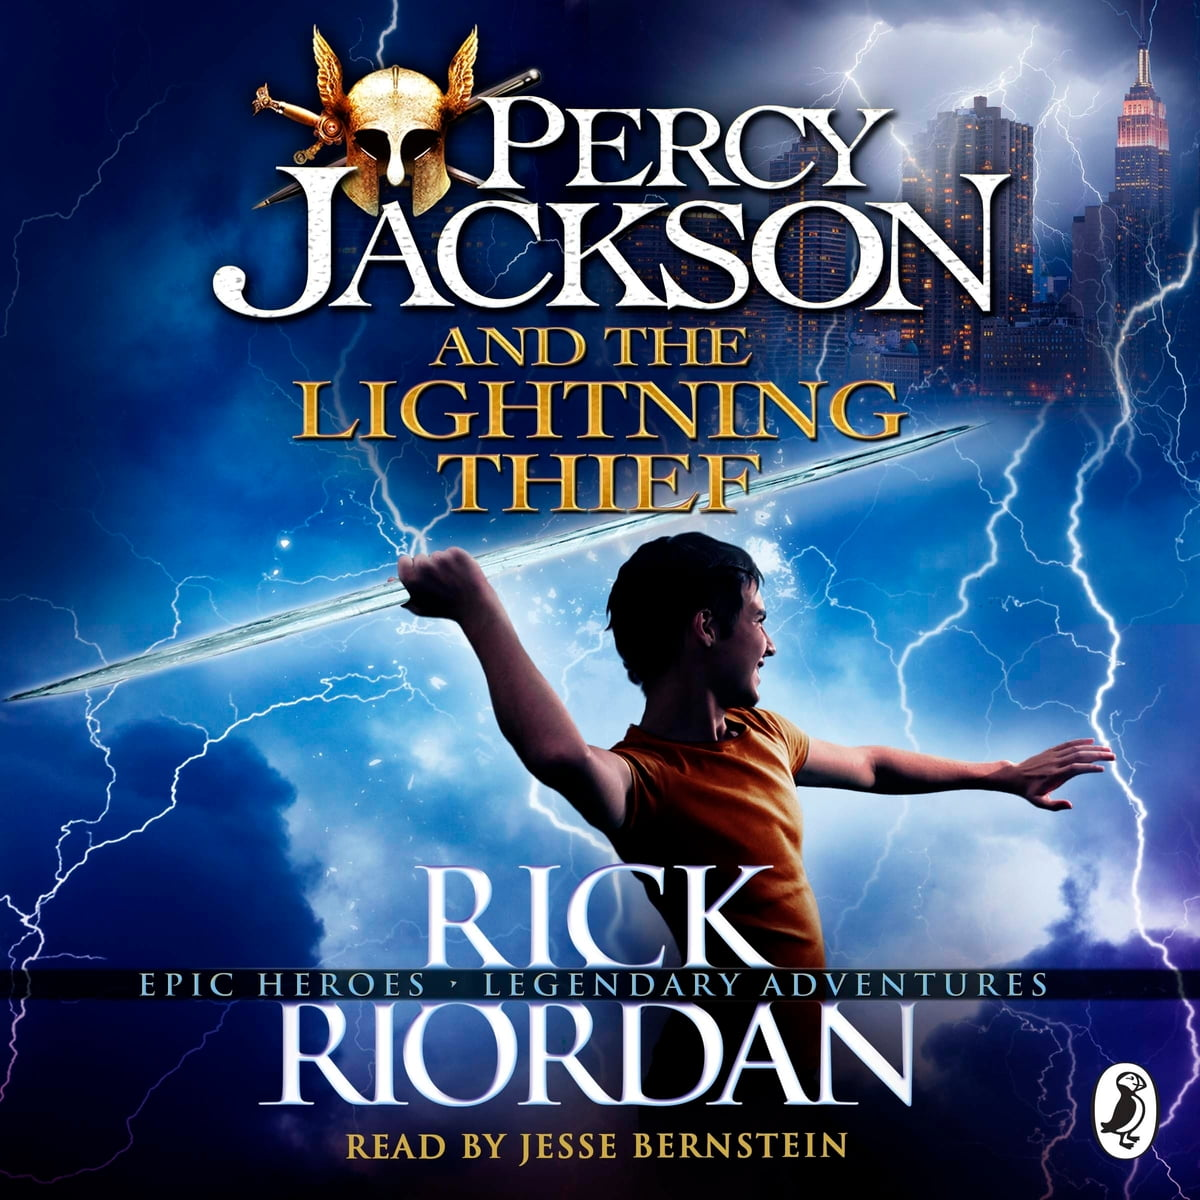 Percy Jackson and the Lightning Thief (Book 1) Audiobook ...